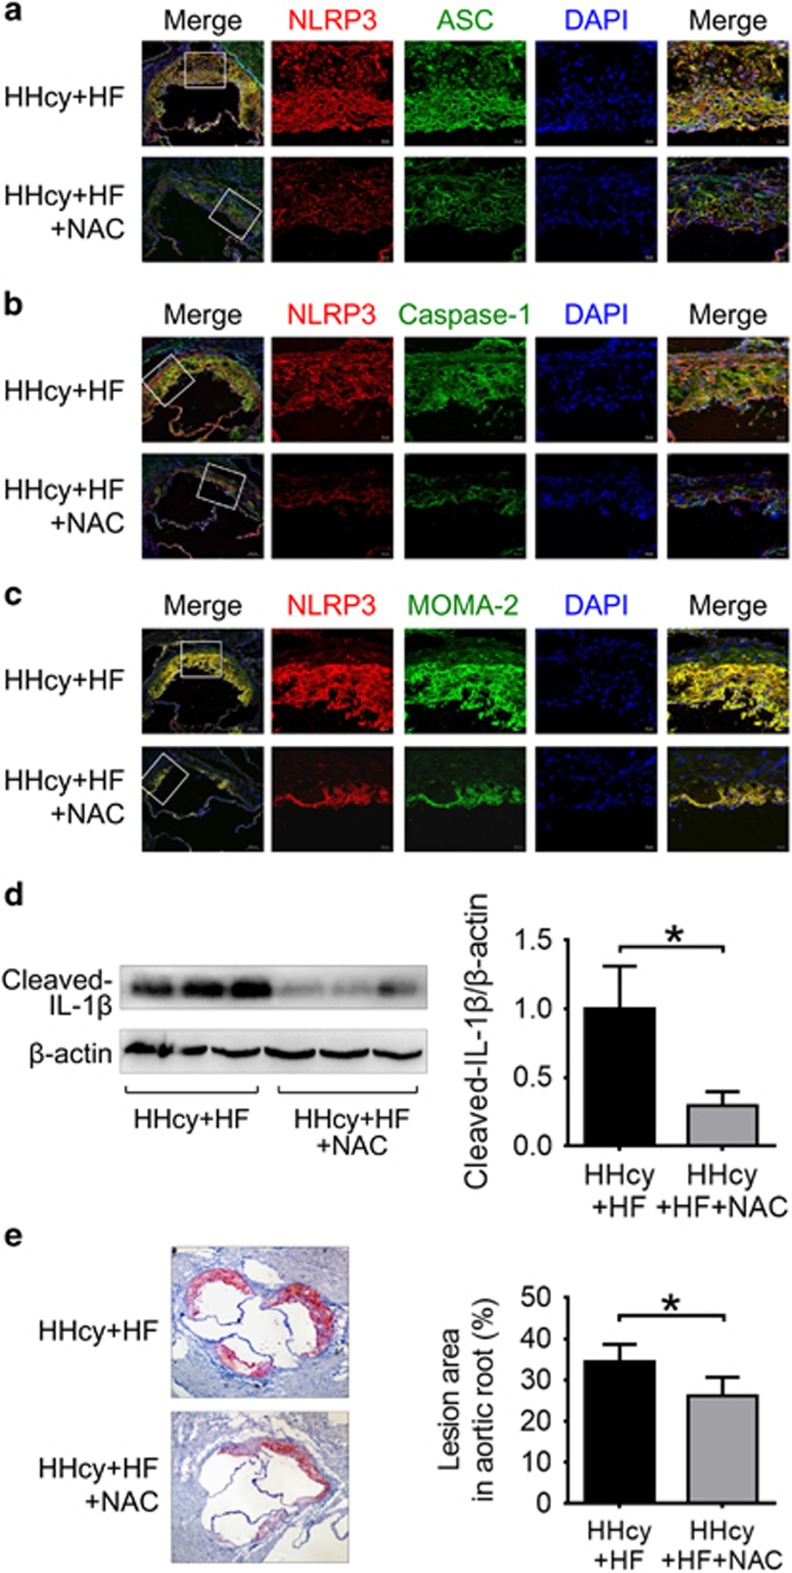 NAC attenuated HHcy-induced NLRP3 inflammasome activation and atherosclerotic lesion formation in apoE −/− mice. ApoE −/− mice were fed high-fat plus high methionine (HF+HM) diet to induce HHcy for 10 weeks. Mice were given a daily i.p. injection of either saline ( n =6) or antioxidant NAC (Sigma, 20 mg/kg/day, n =8) three times per week on alternate days over 10 weeks of HF+HM diet. Mouse aortas and hearts were harvested. Serial sections of aortic roots were harvested and double immunofluorescent stained or stained with Oil red O. Representative confocal microscopic images showing colocalization of NLRP3 (red) with ASC (green) ( a ), NLRP3 (red) with caspase-1 (green) ( b ) and NLRP3 (red) with MOMA-2 (green) ( c ) in atherosclerotic lesion of aortic root sections. ( d ) Representative blots and quantitative analysis showing the cleaved IL-1 β in aorta. ( e ) Oil red O staining showing the atherosclerotic lesions and quantitative analysis of atherosclerotic lesion area in the aortic root. HHcy, hyperhomocysteinemia; NAC, N -acetyl- l -cysteine. * P